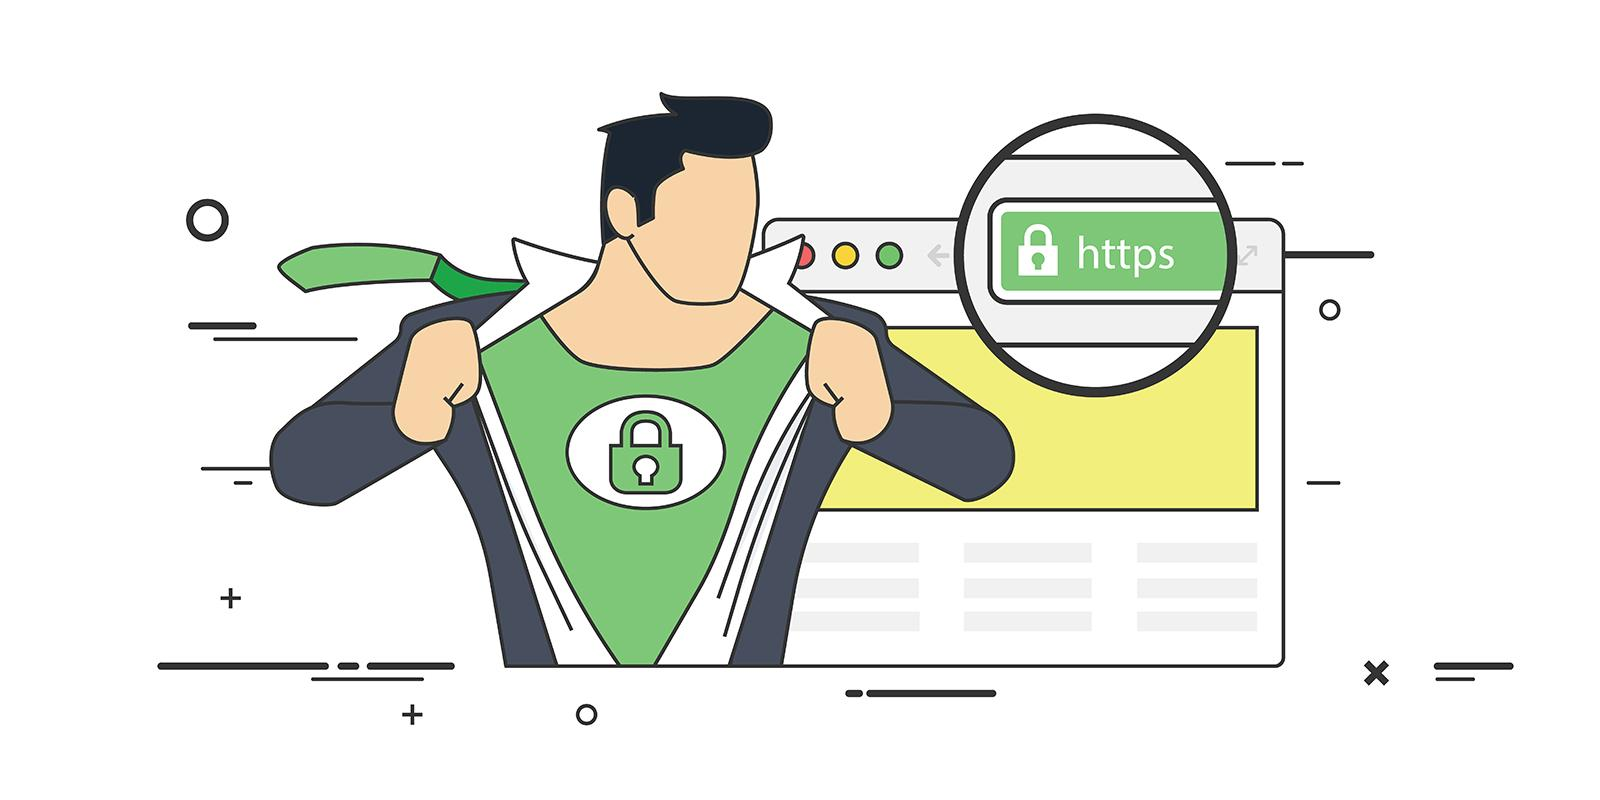 5 Vantagens do Certificado SSL